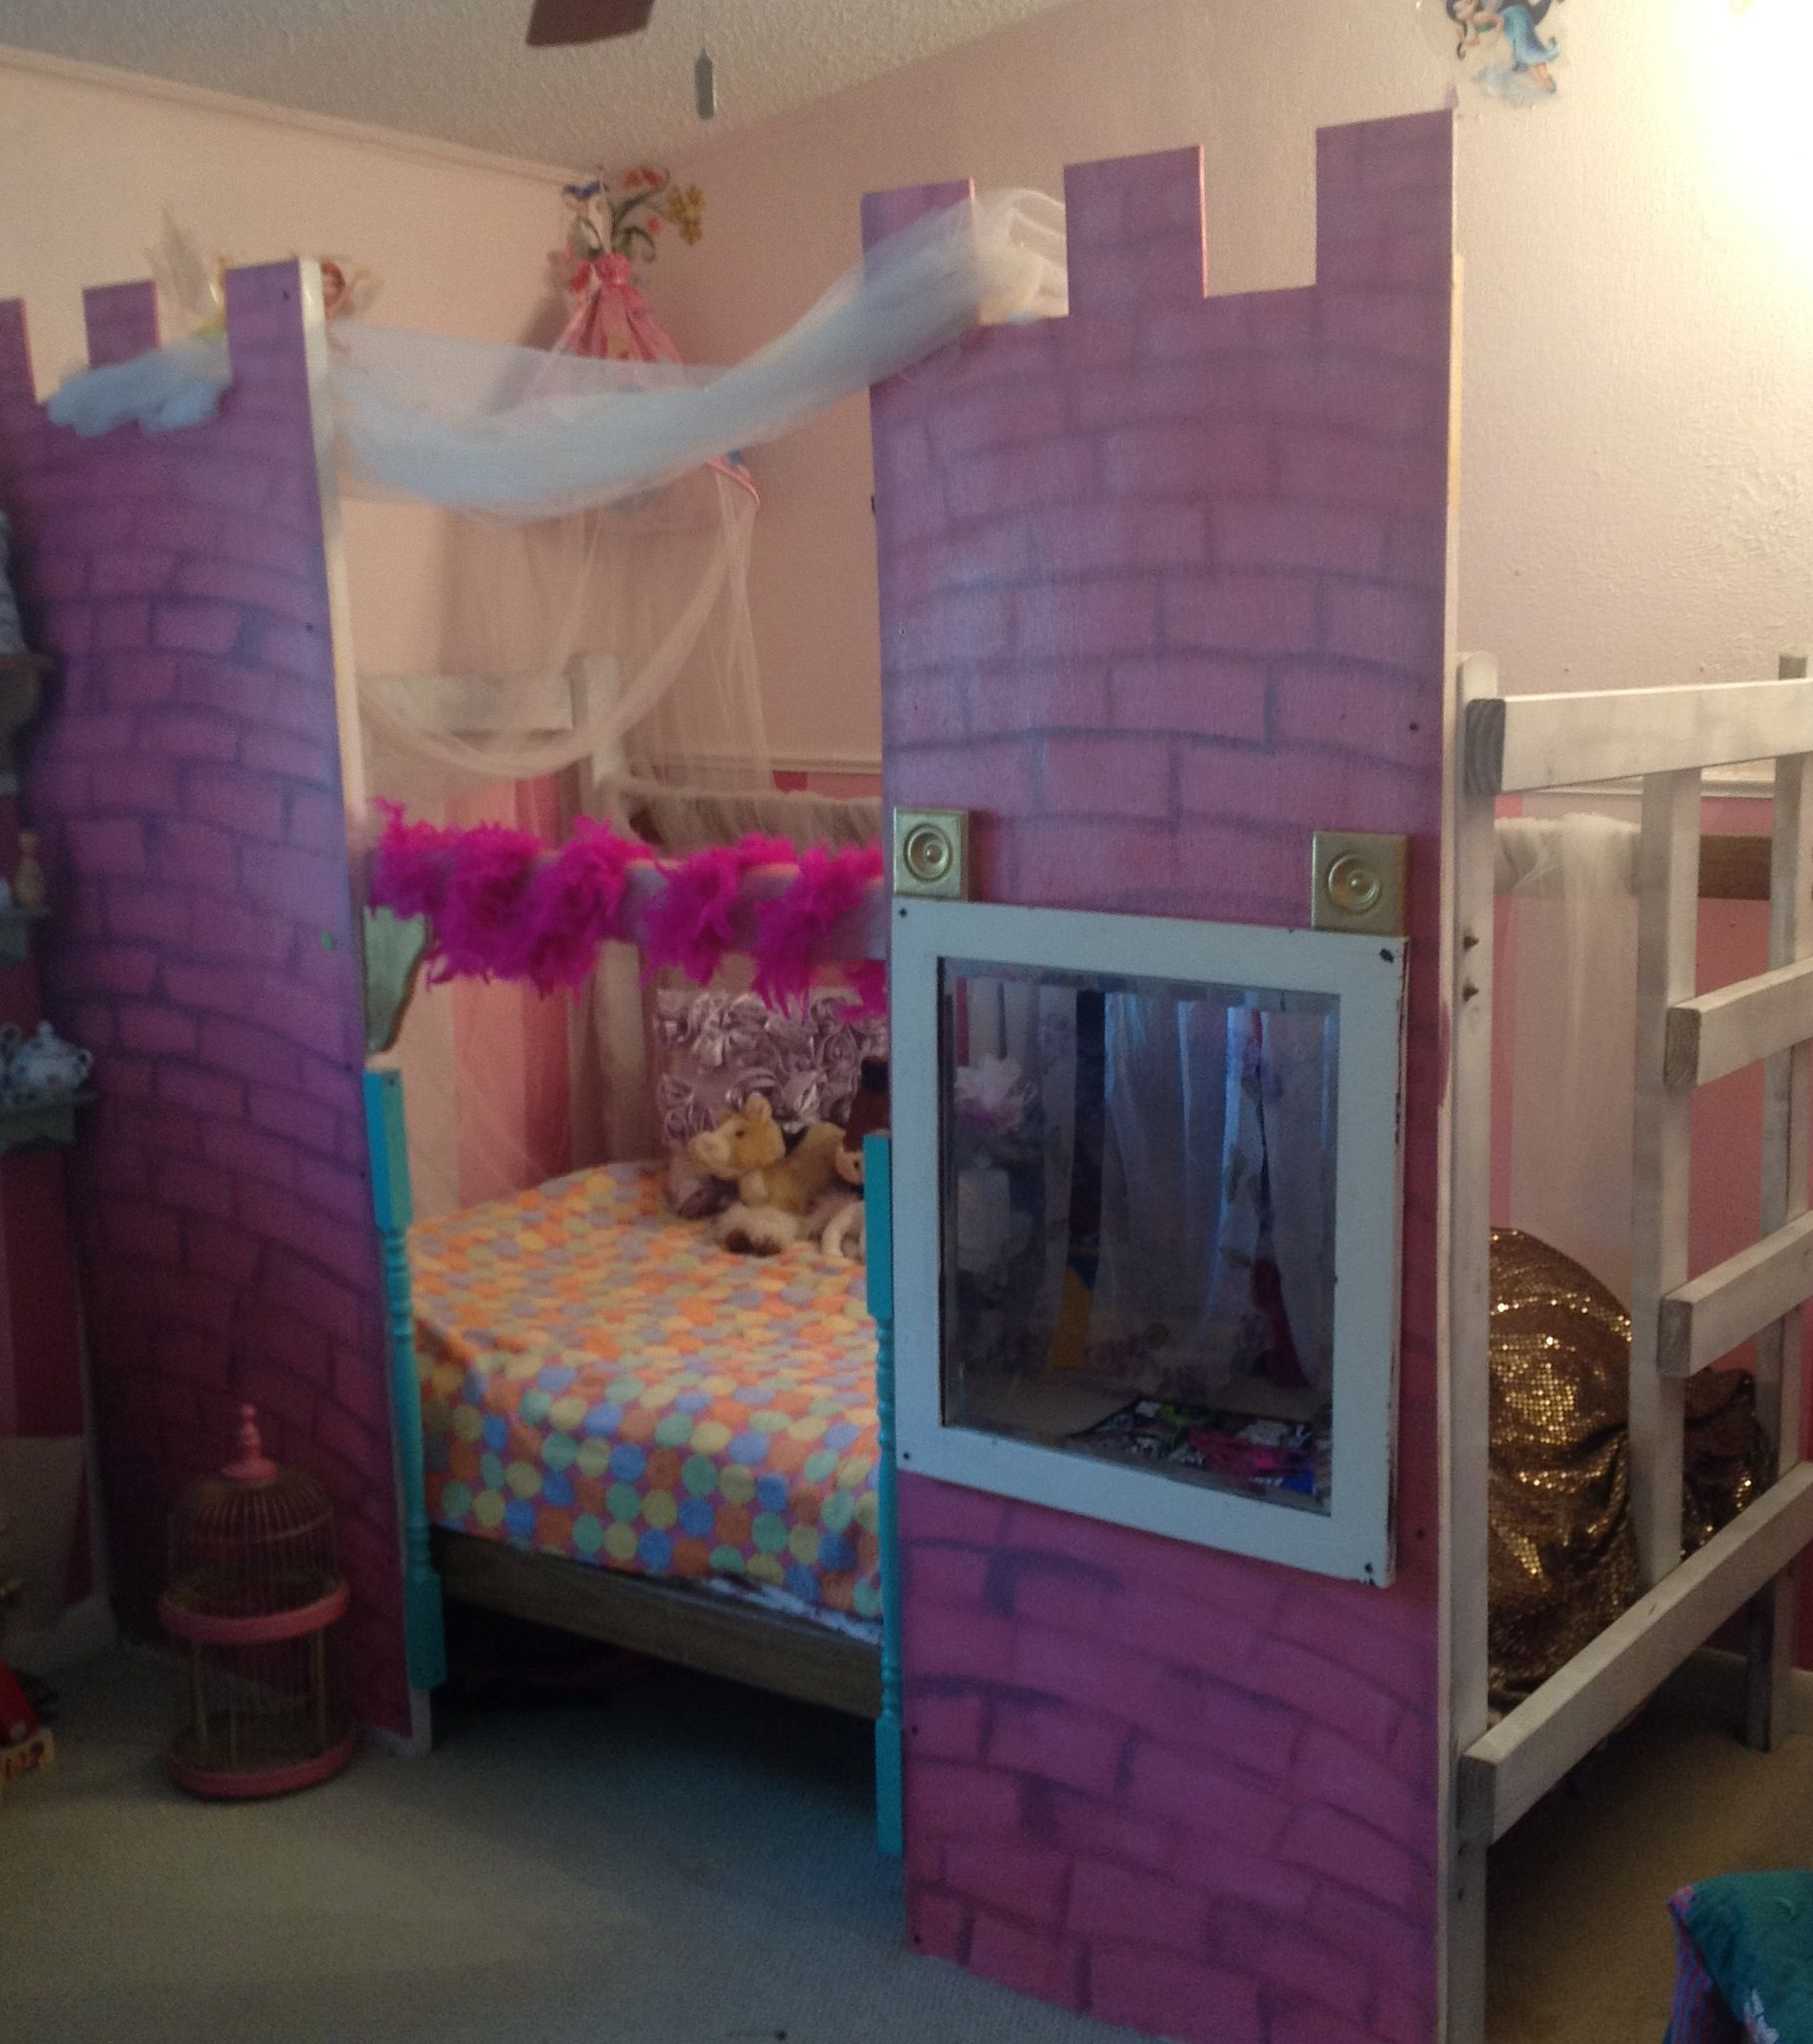 Princess castle bed, now your little princess can have